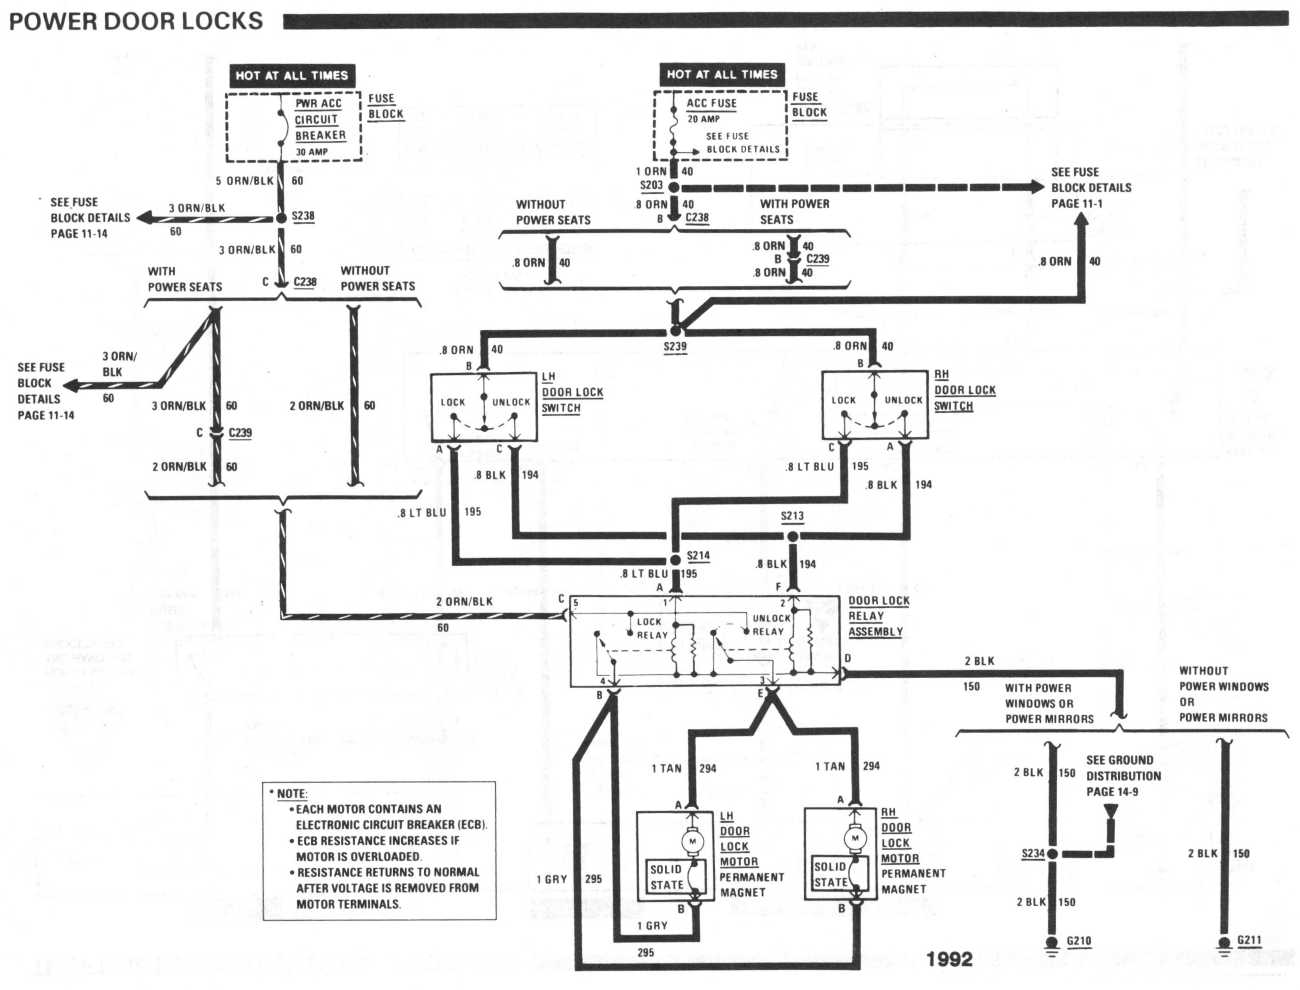 diagram_1992_power_door_locks power door locks not working at all third generation f body 1997 ford f150 power door lock wiring diagram at alyssarenee.co